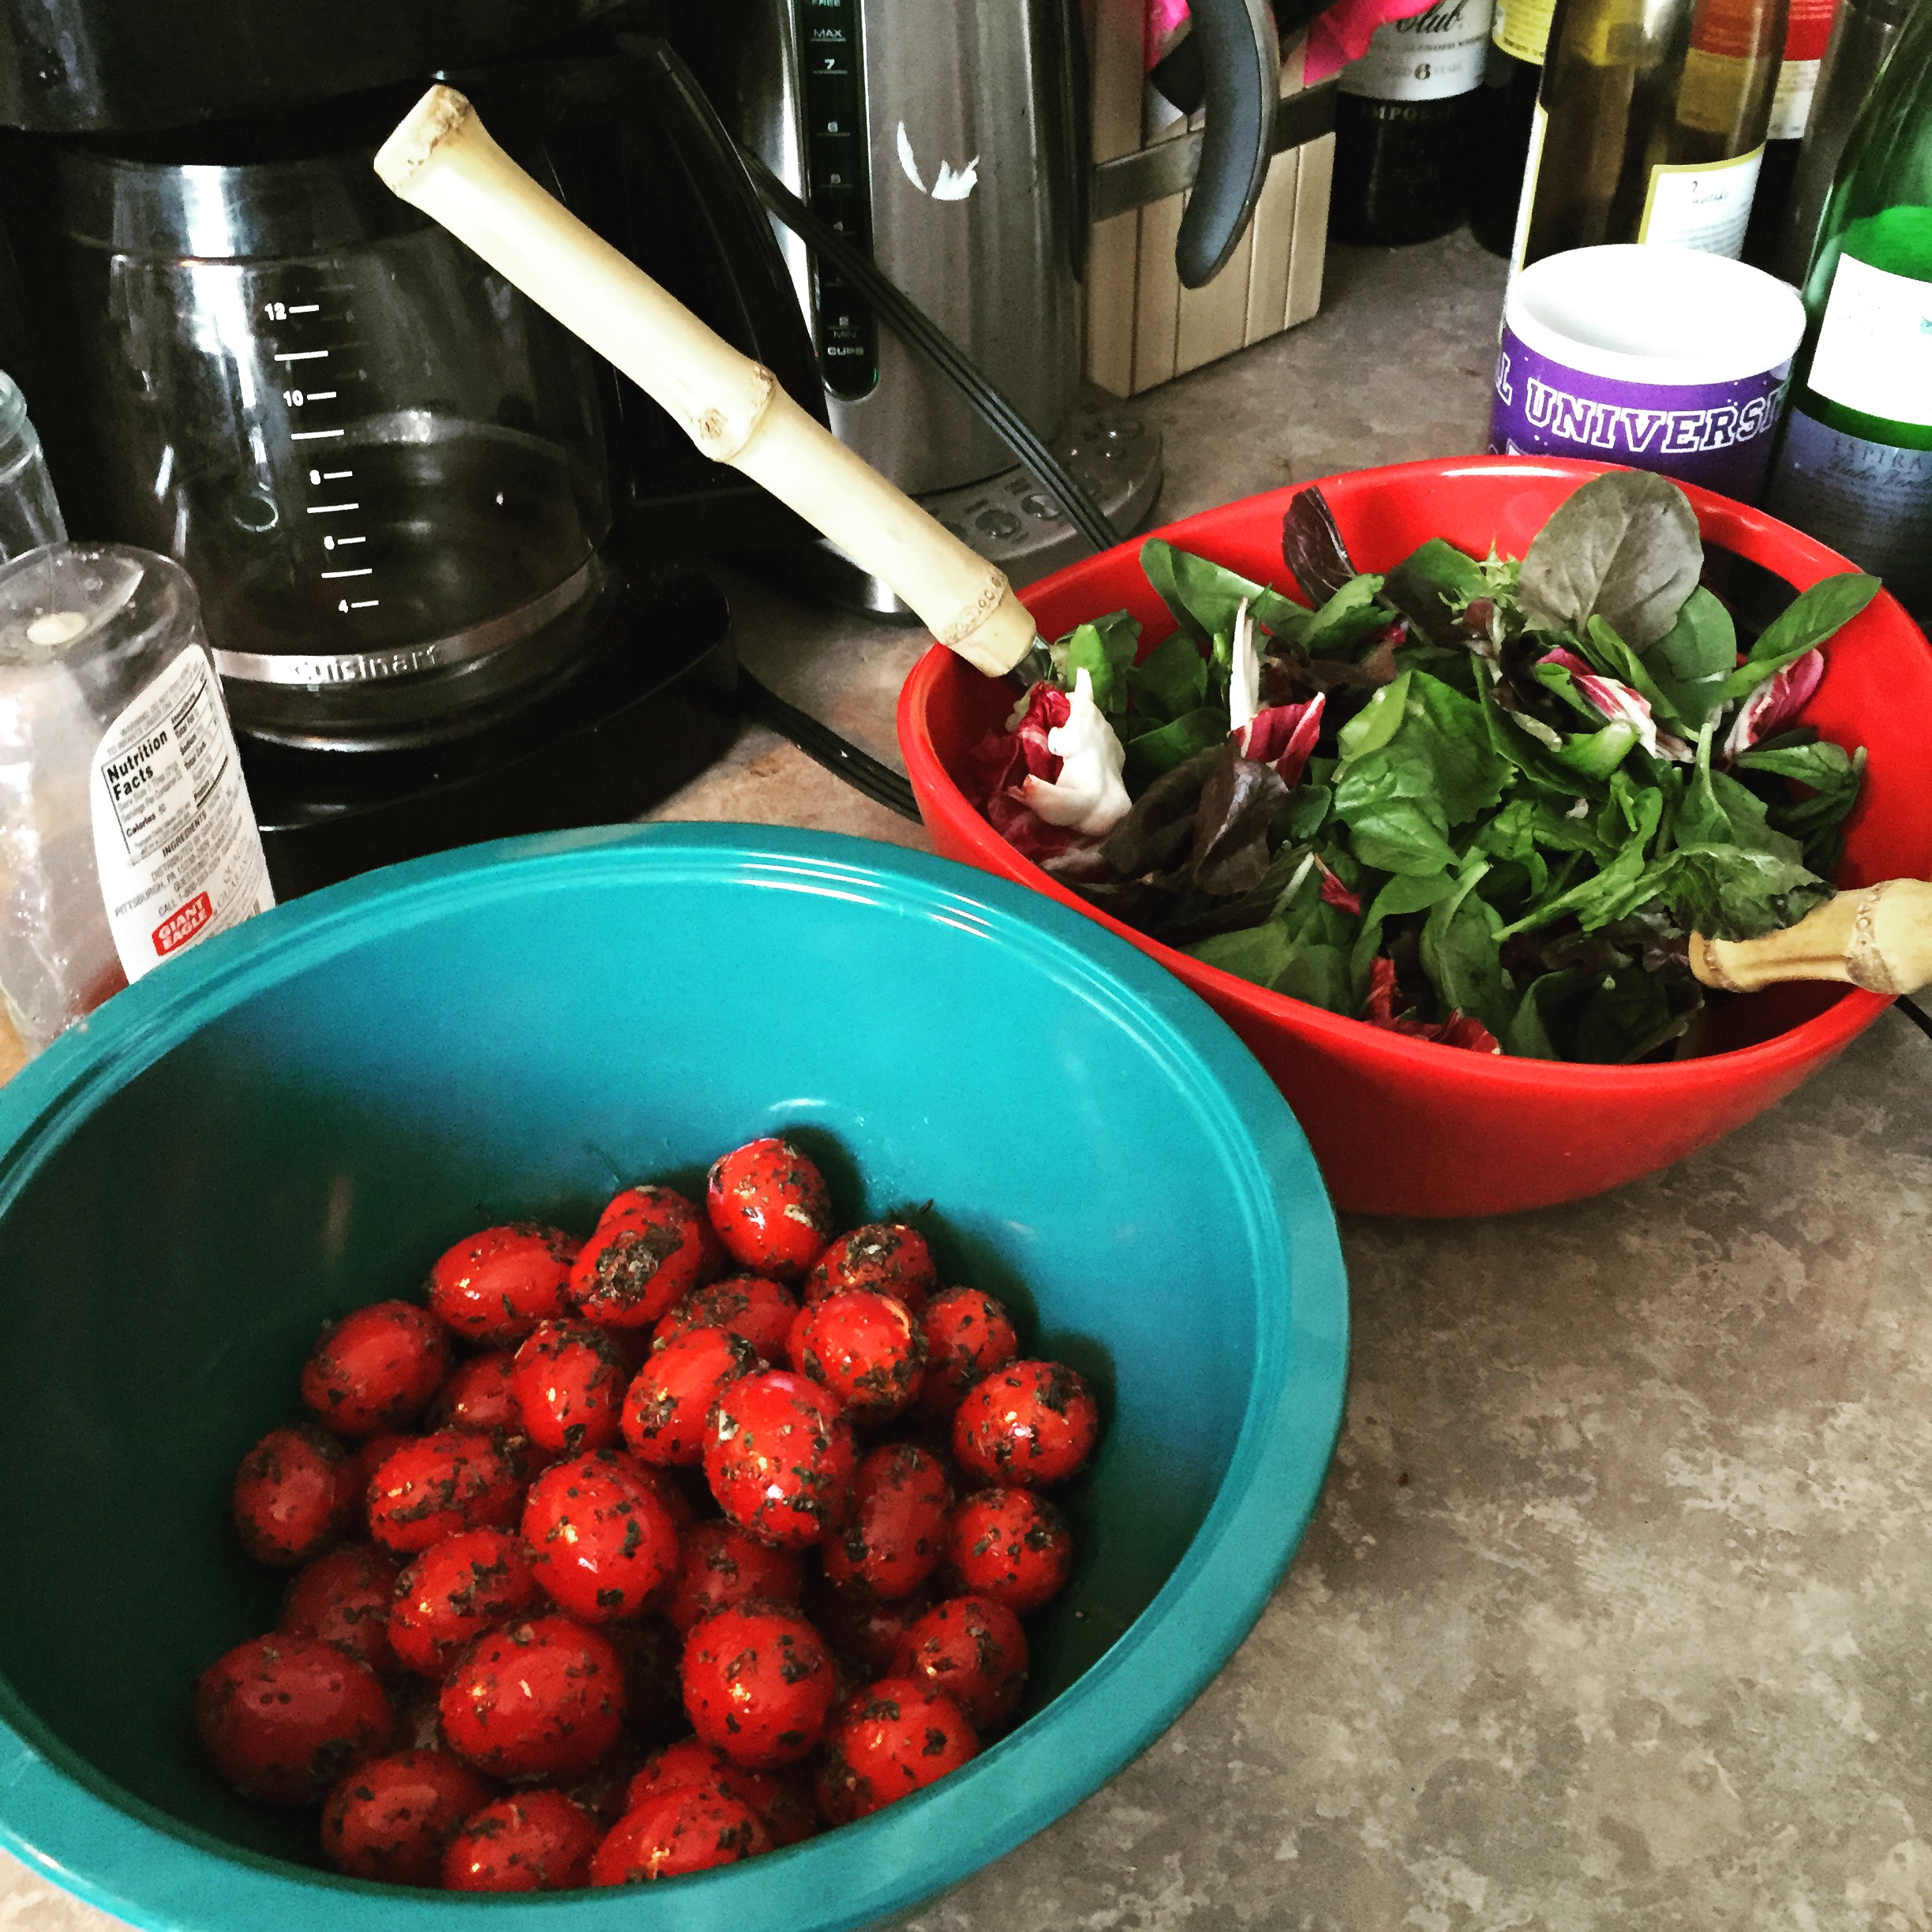 The herb roasted tomatoes and salad